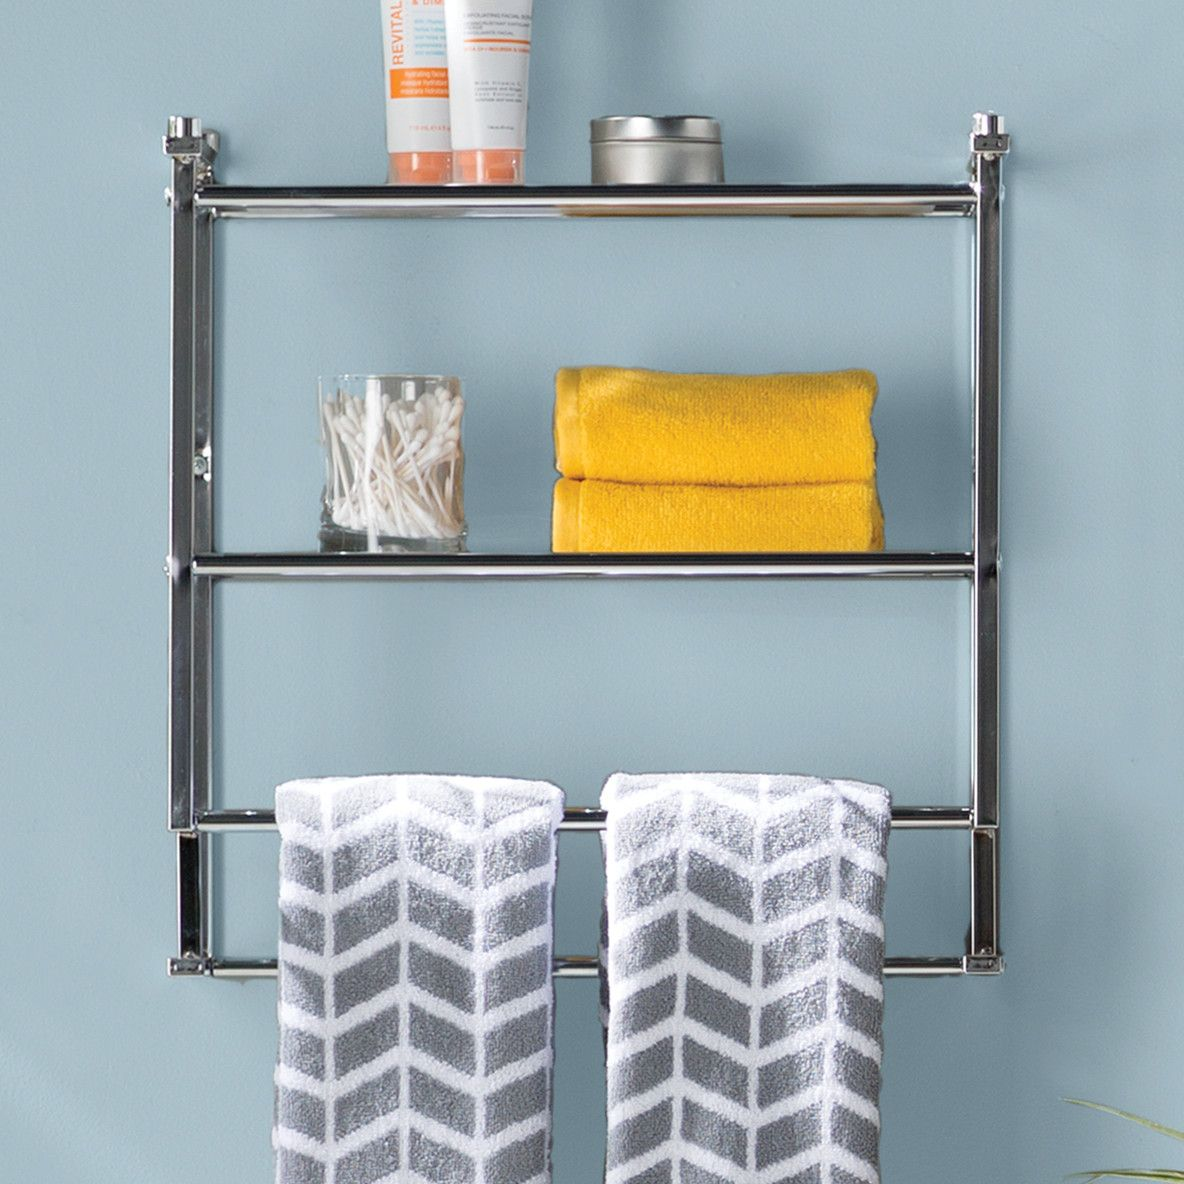 Easton Wall Mounted Towel Rack | Products | Pinterest | Wall mount ...